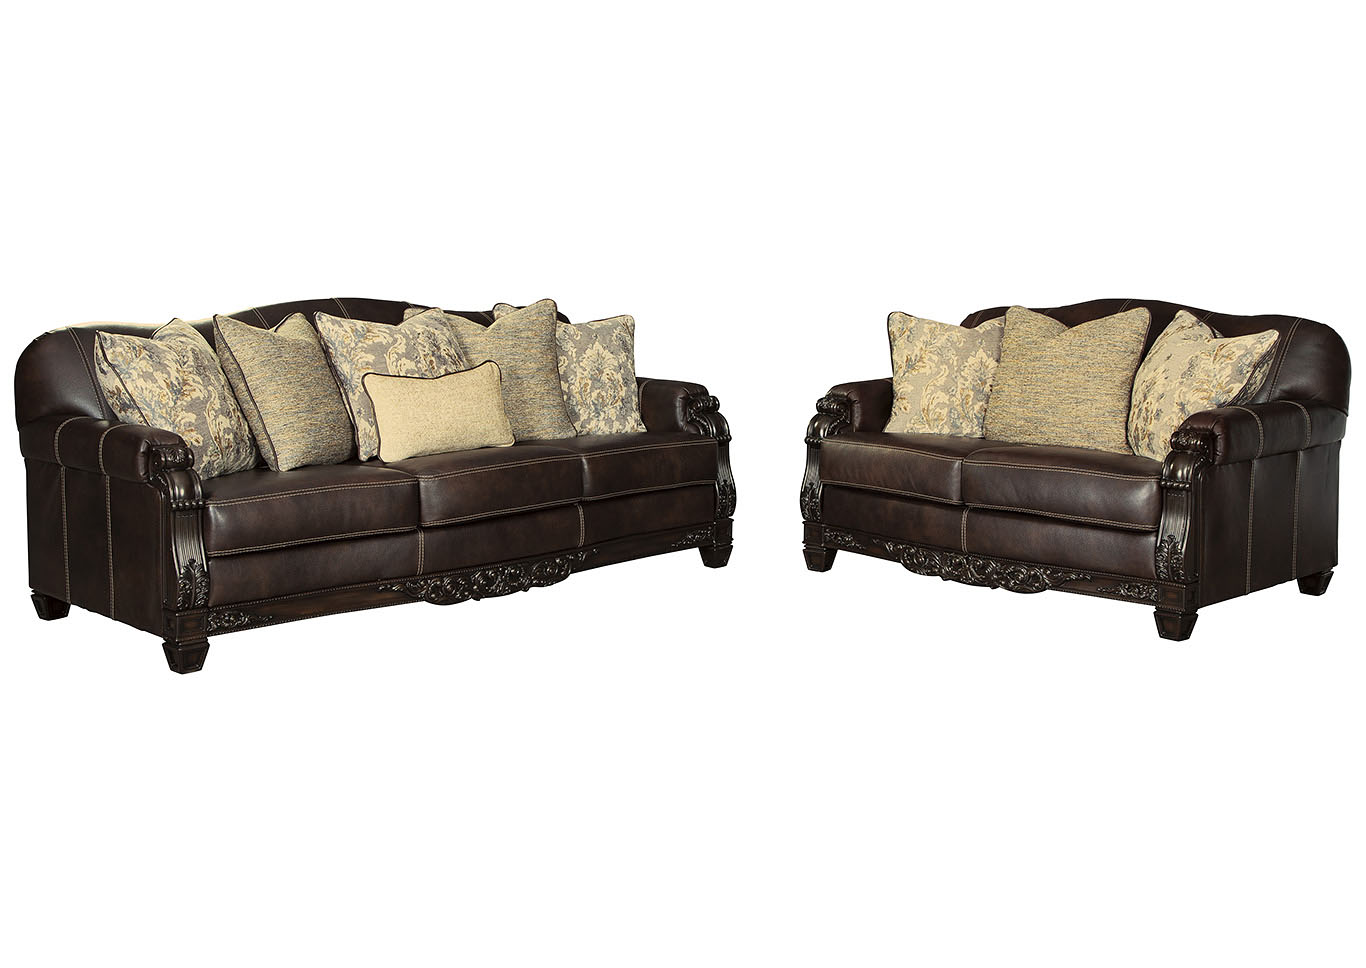 Embrook Chocolate Sofa and Loveseat,Signature Design By Ashley